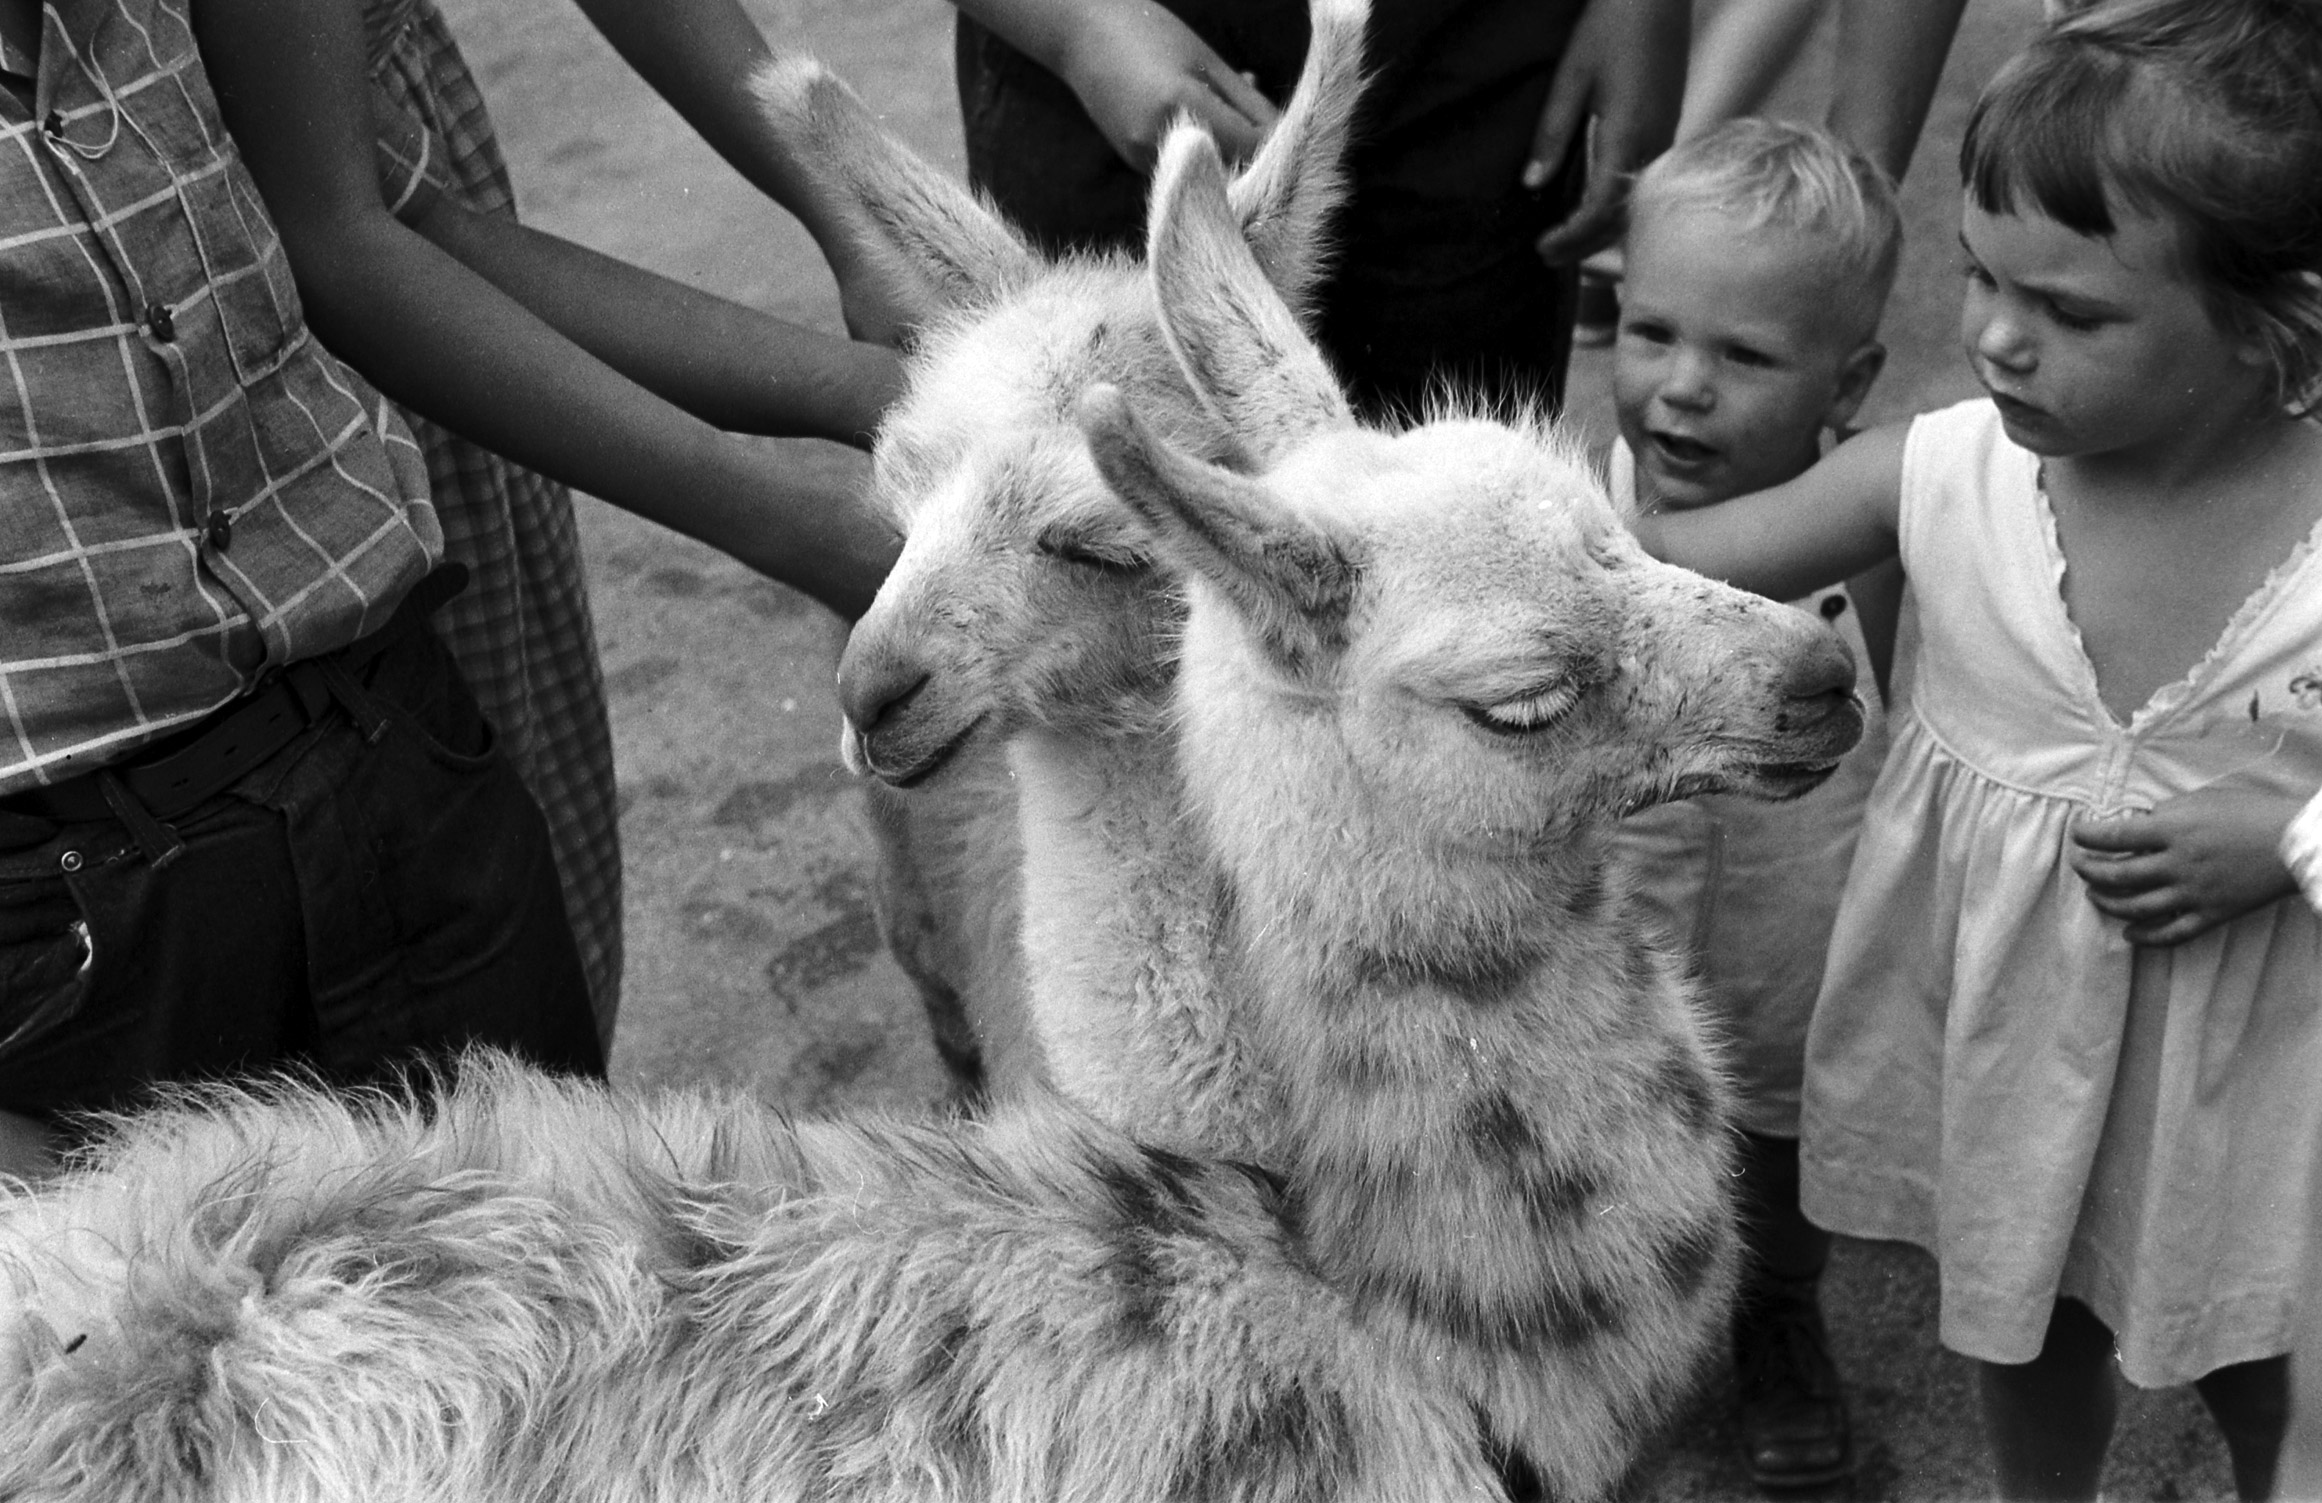 Baby llamas at the Brookfield Children's Zoo in Chicago, 1953.